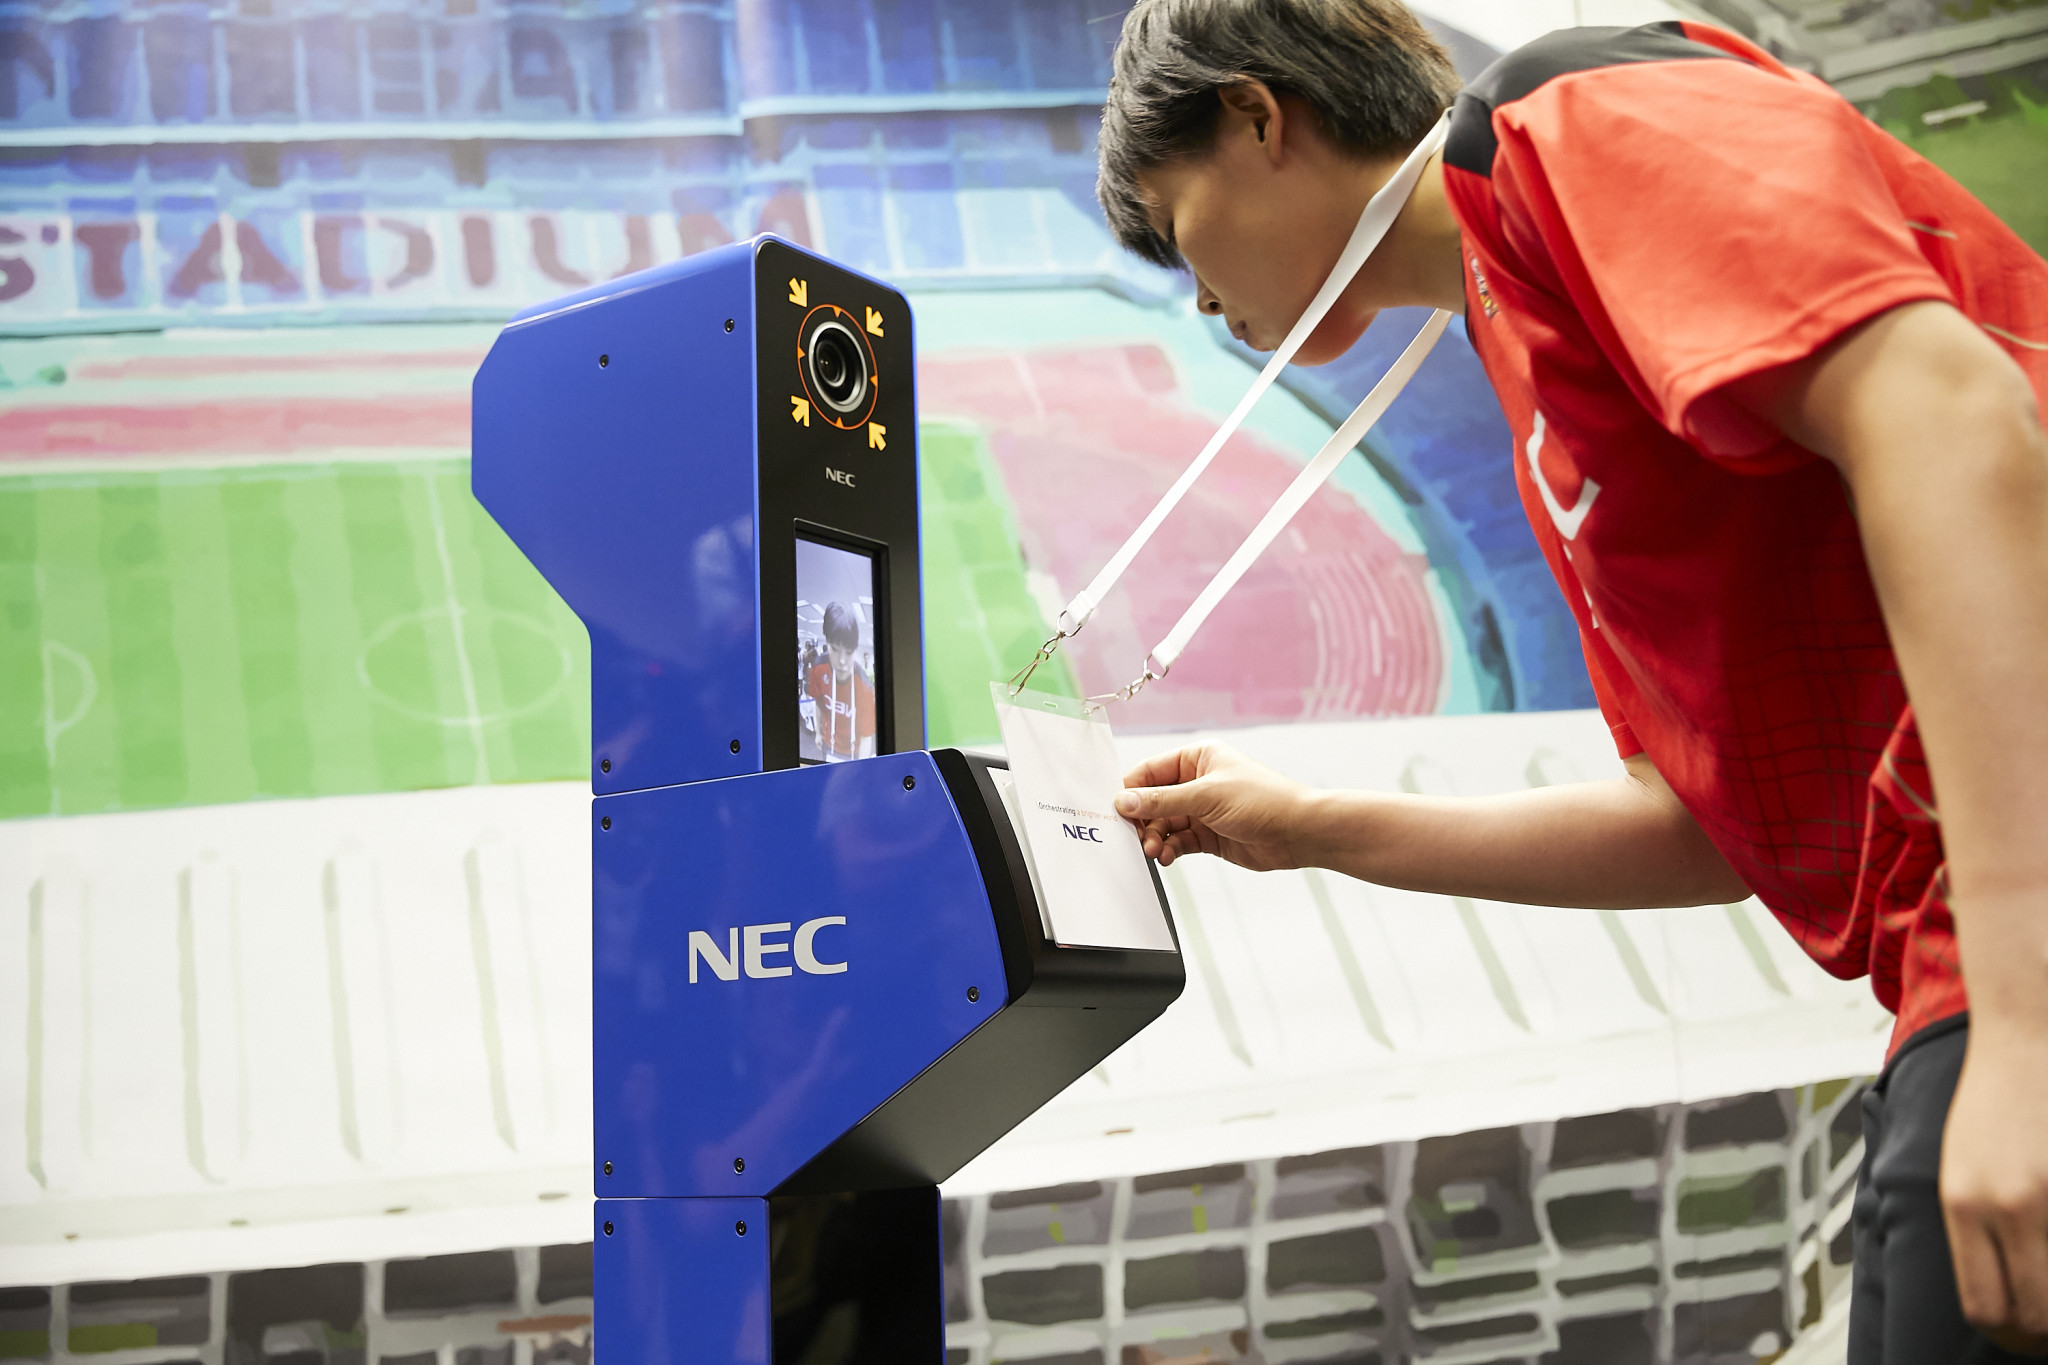 Tokyo 2020 confirm use of facial recognition technology at Olympic and Paralympic Games